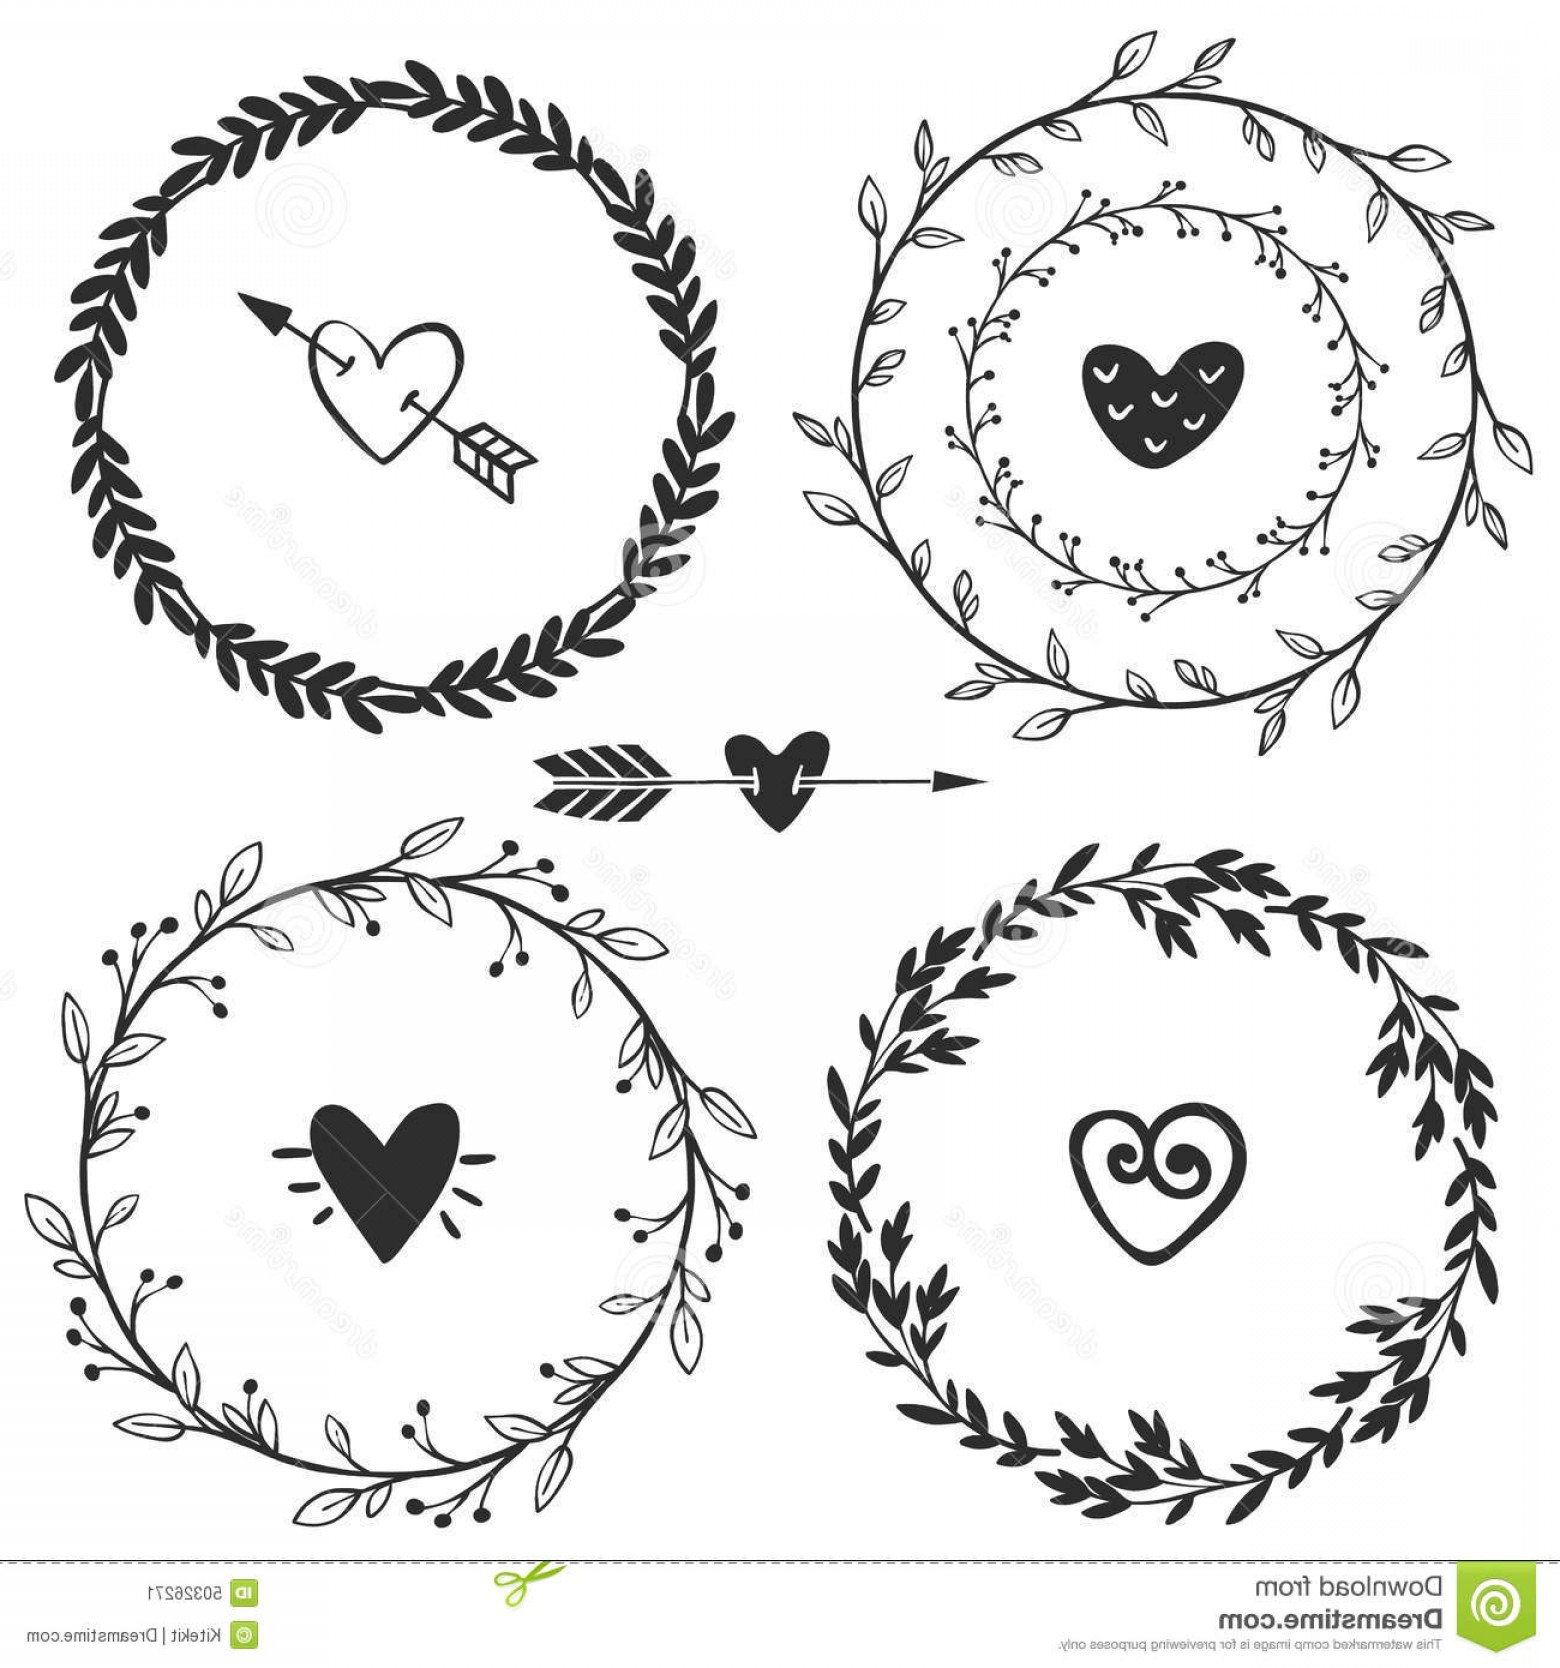 Rustic Heart Vectors: Hand Drawn Rustic Vintage Wreaths With Hearts Floral Vector Illustration